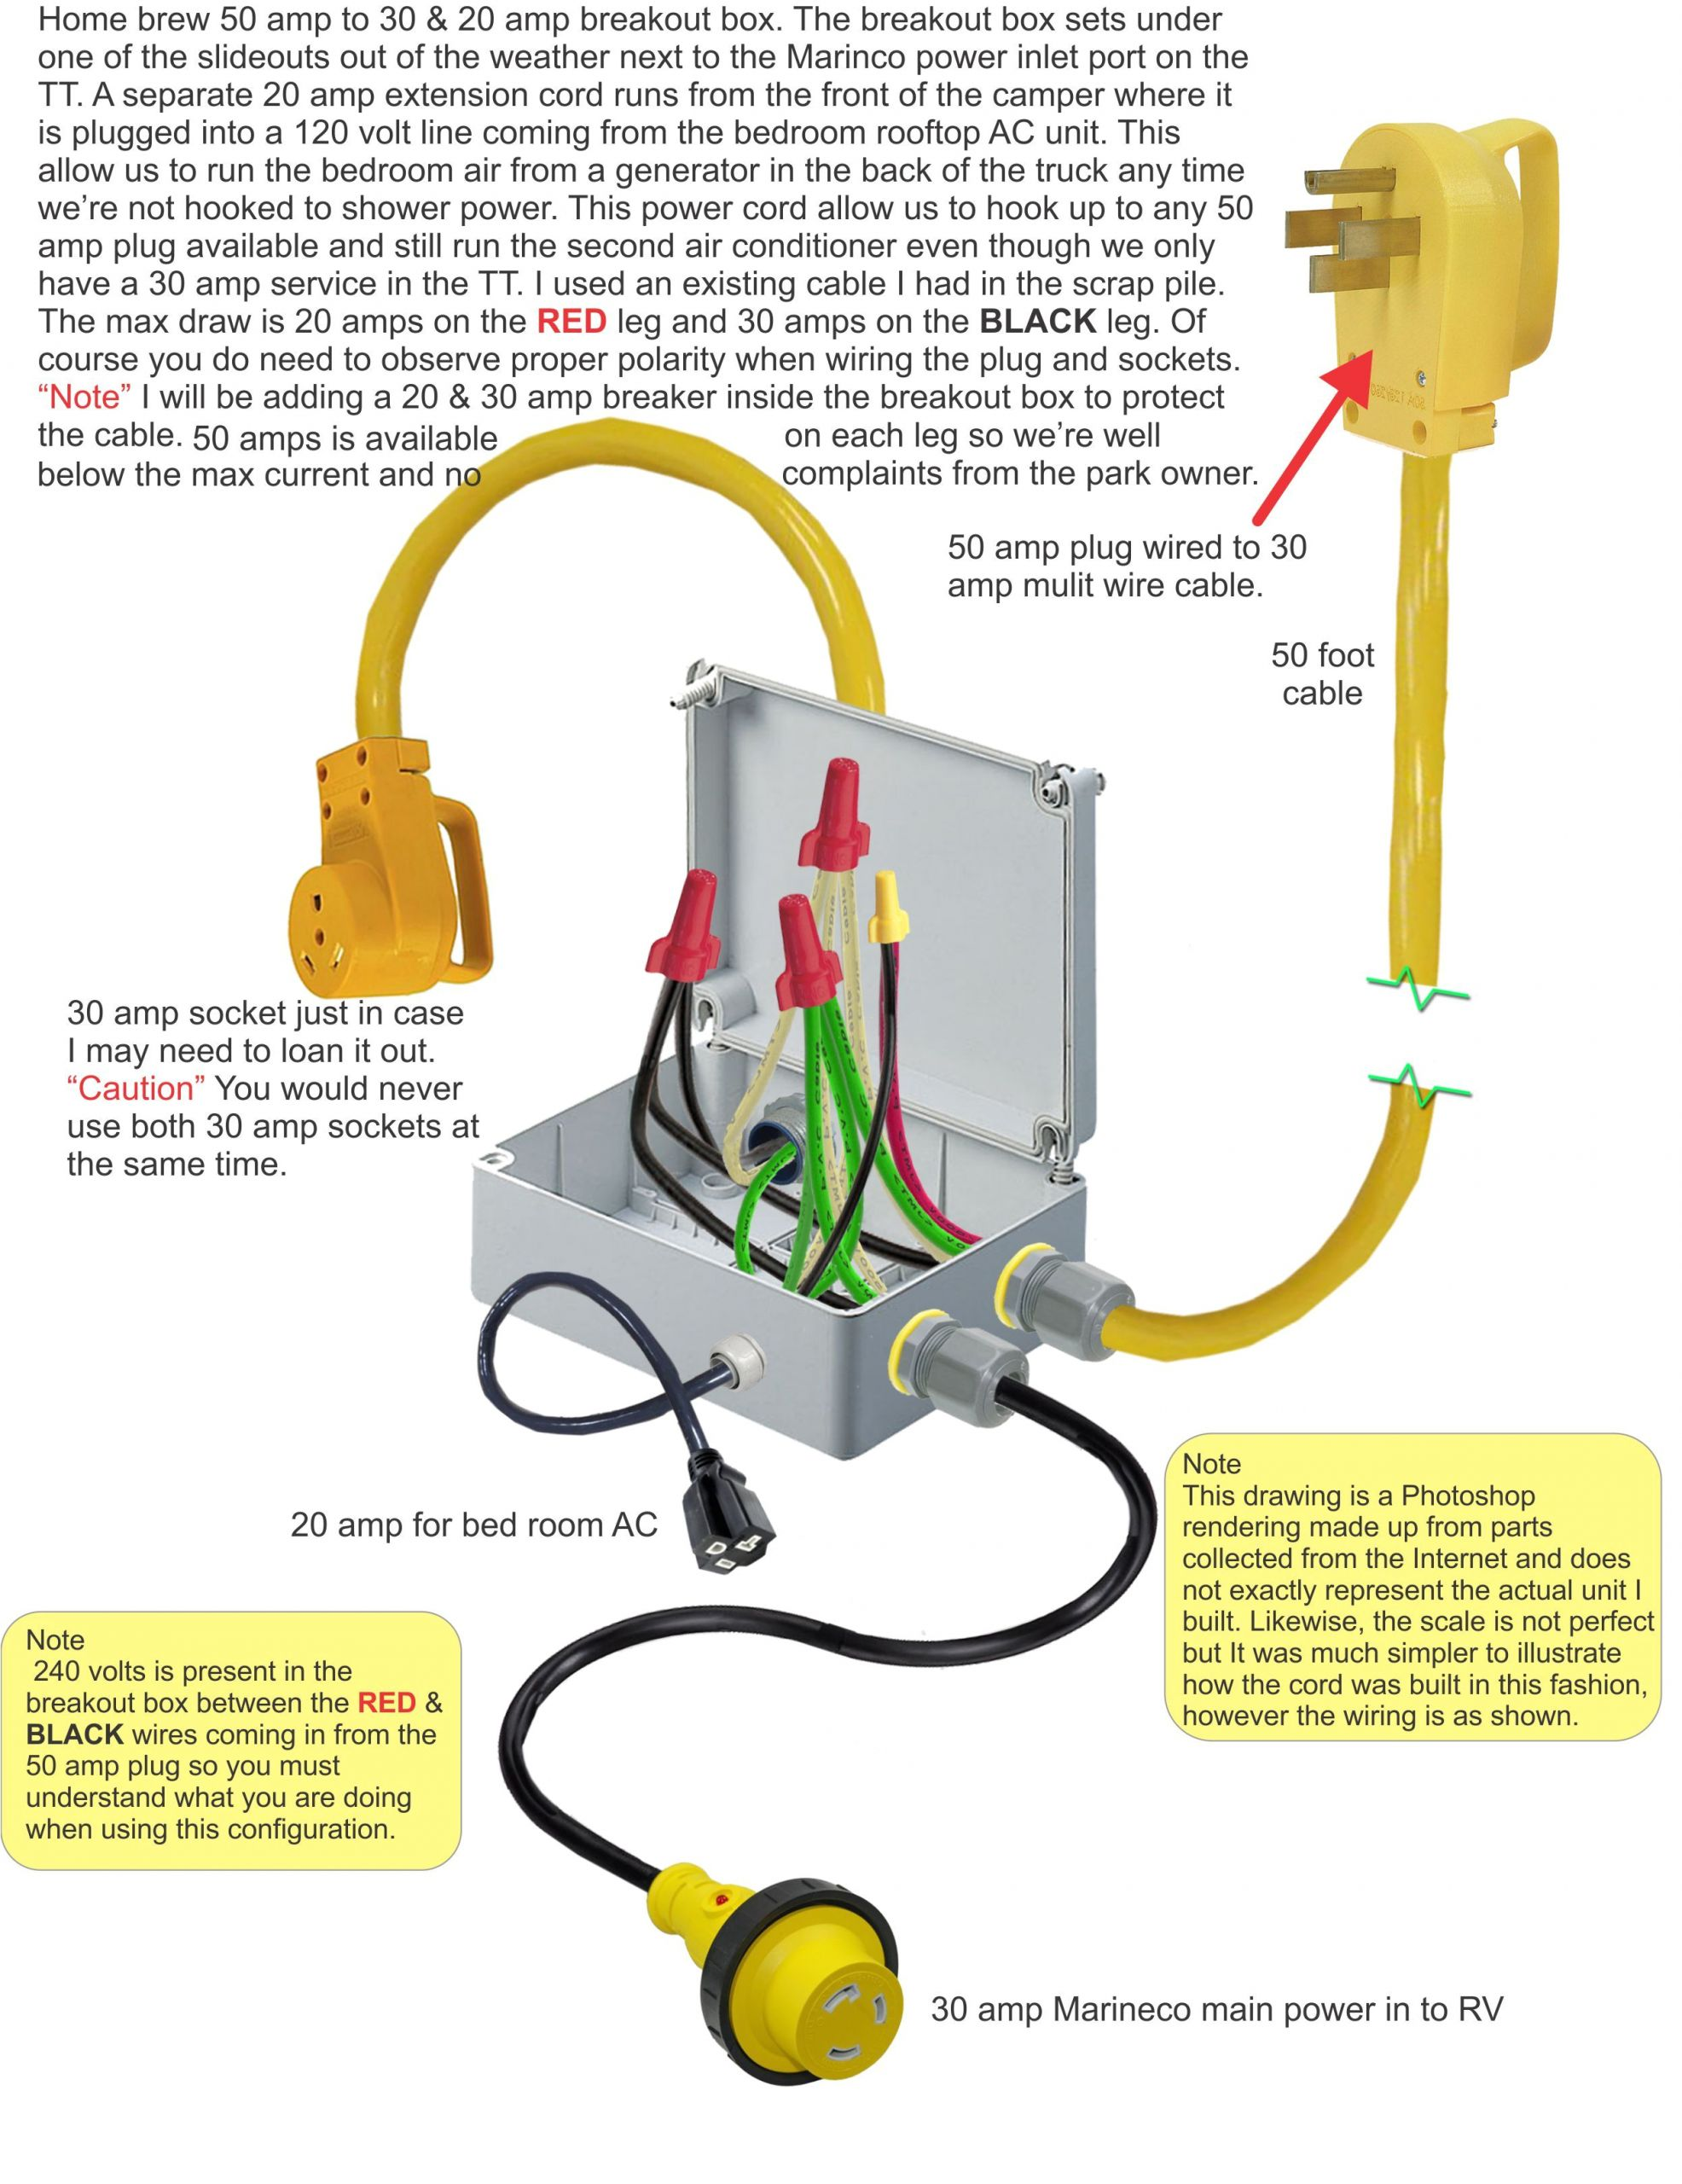 50 Amp Rv Power Cord Wiring Diagram 50 Amp Rv Plug Wiring Diagram More Details Can Be Found